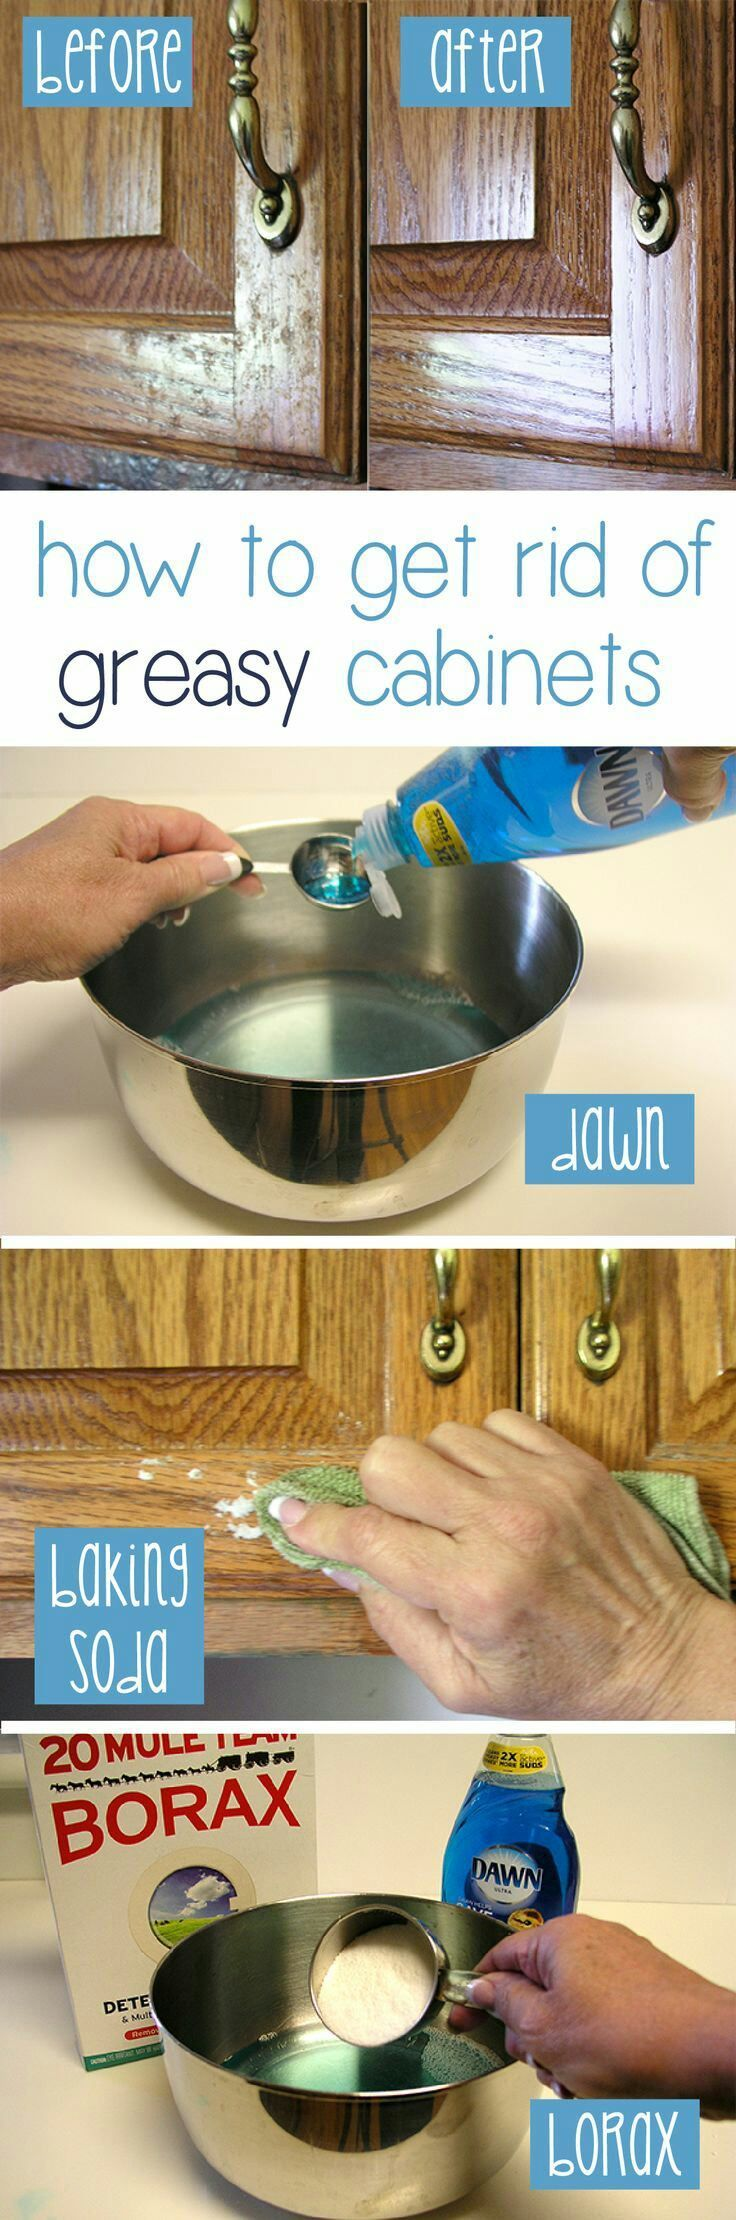 Cleaning kitchen cabinets is important especially grease stains as they usually go unnoticed and grow